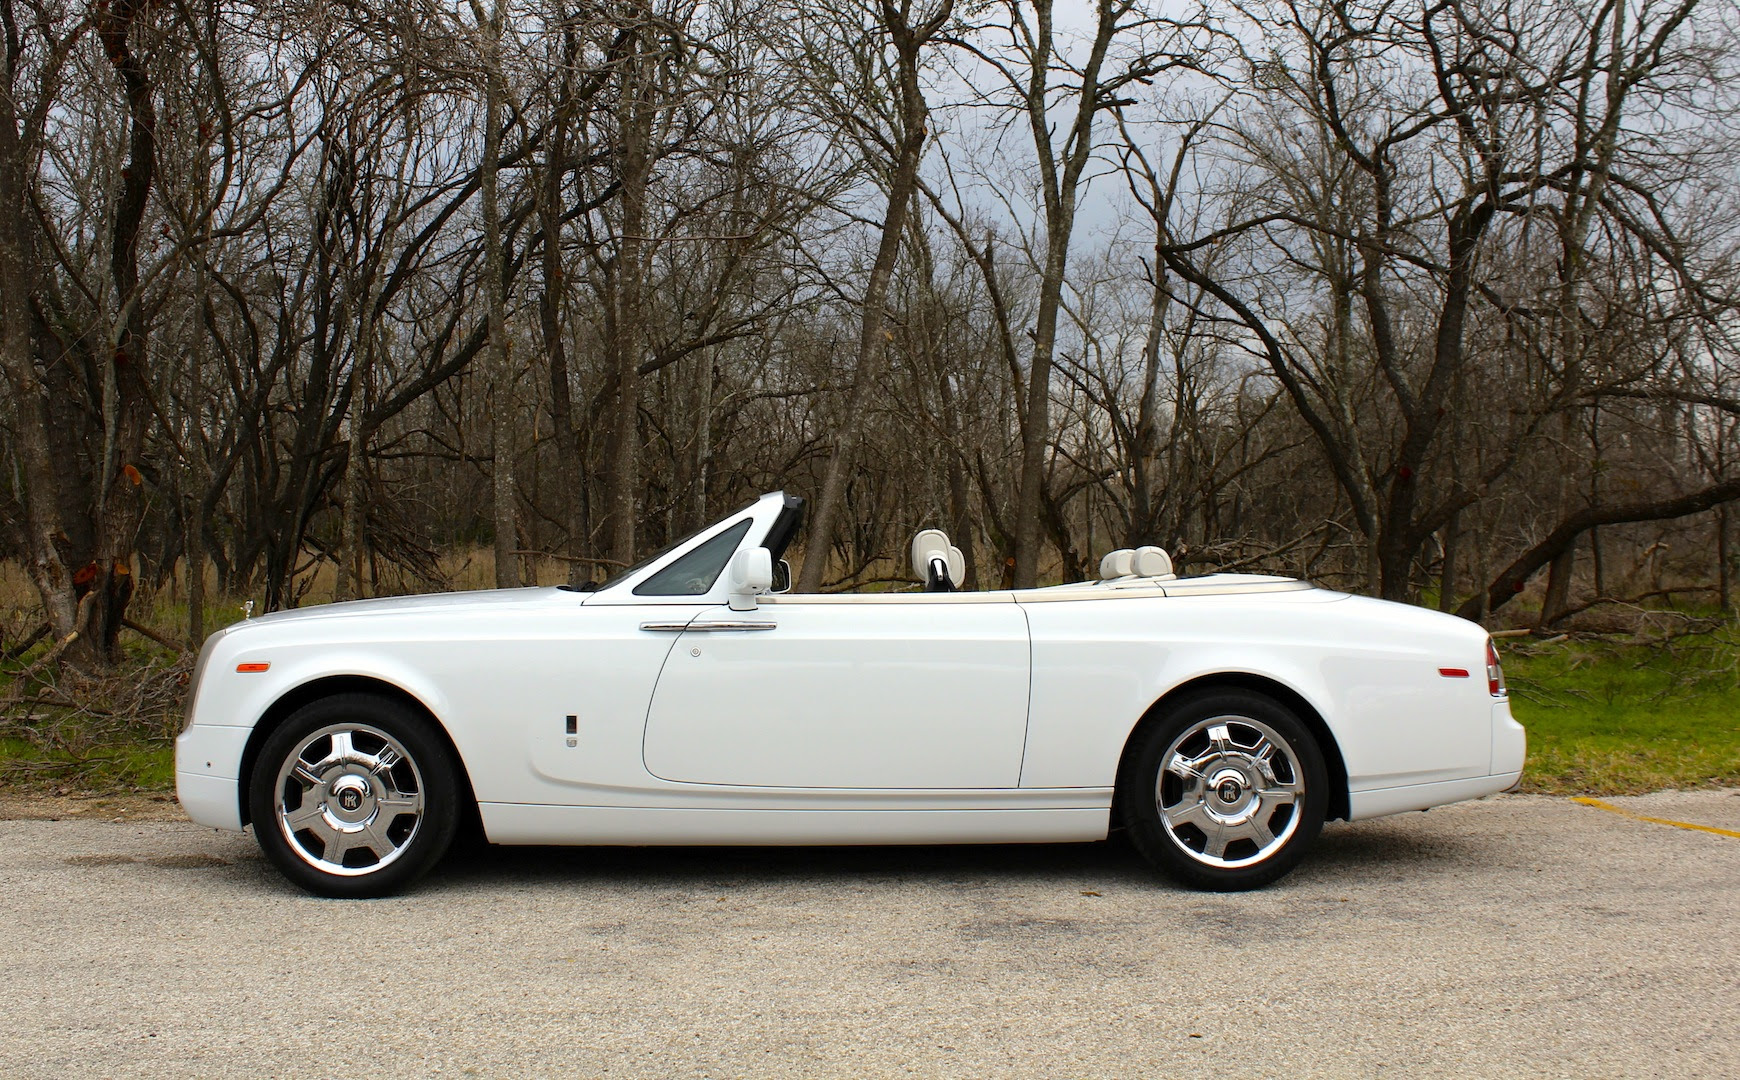 2015 rolls royce phantom drophead coupe peter bleakney photo 2015